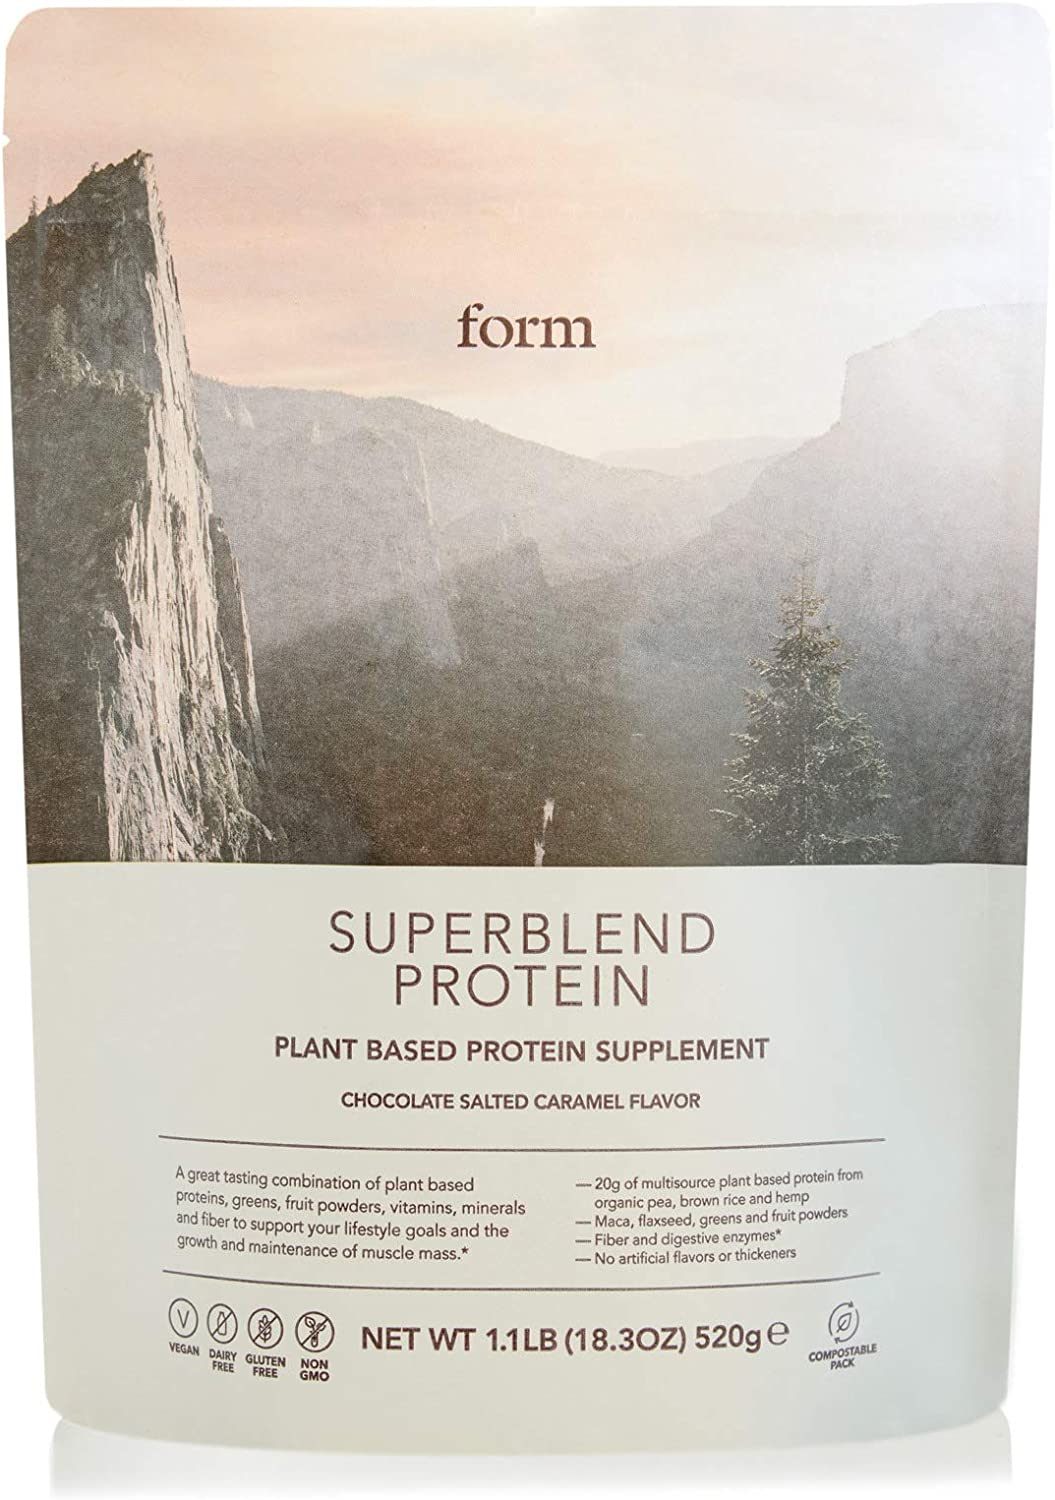 Form Superblend Protein - Vegan Protein Powder with Superfoods, Vitamins and Minerals (Chocolate Salted Caramel)